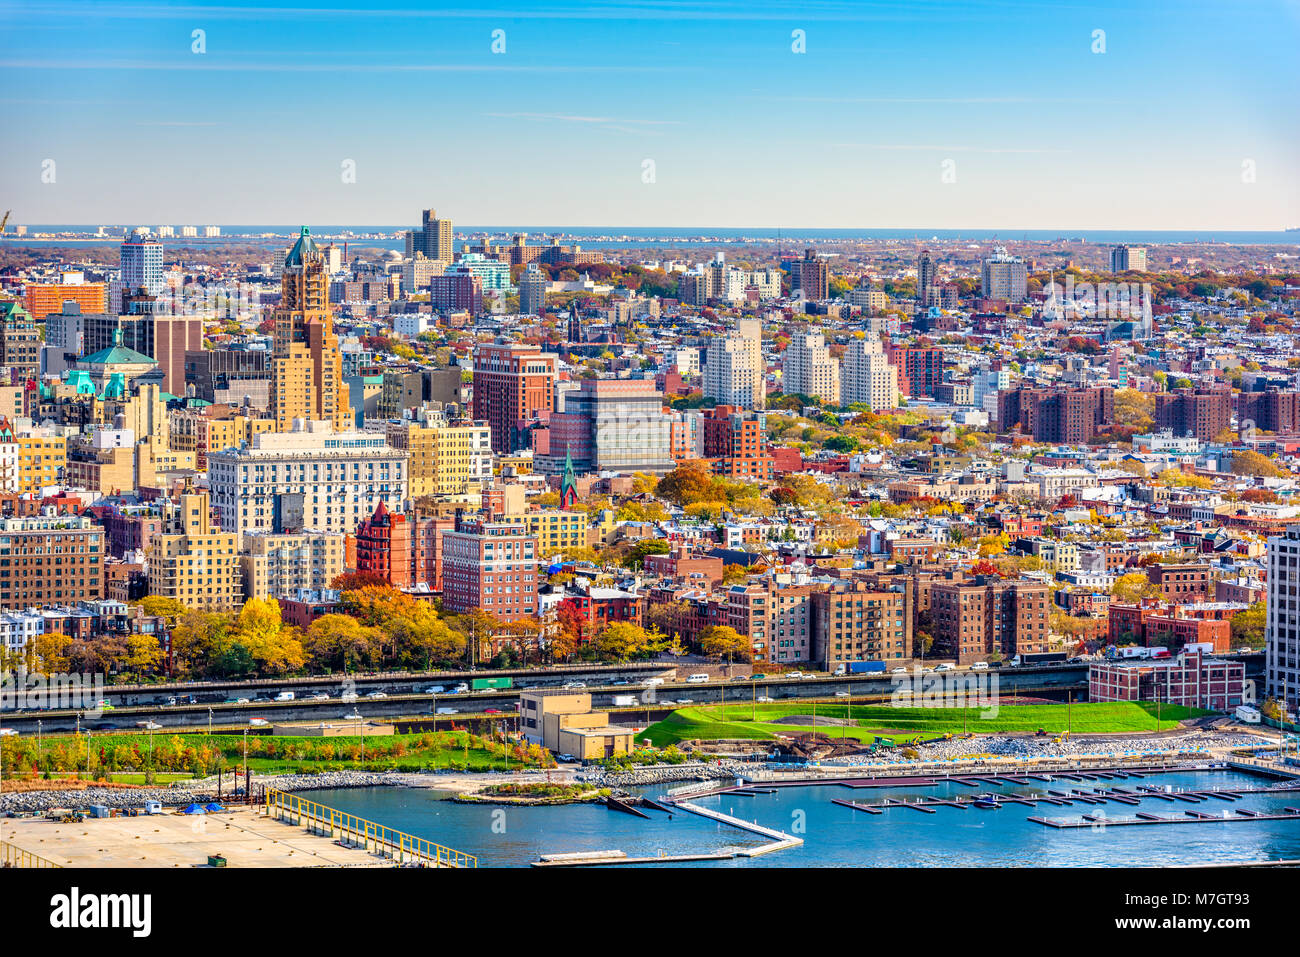 Brooklyn, New York, USA cityscape over downtown - Stock Image